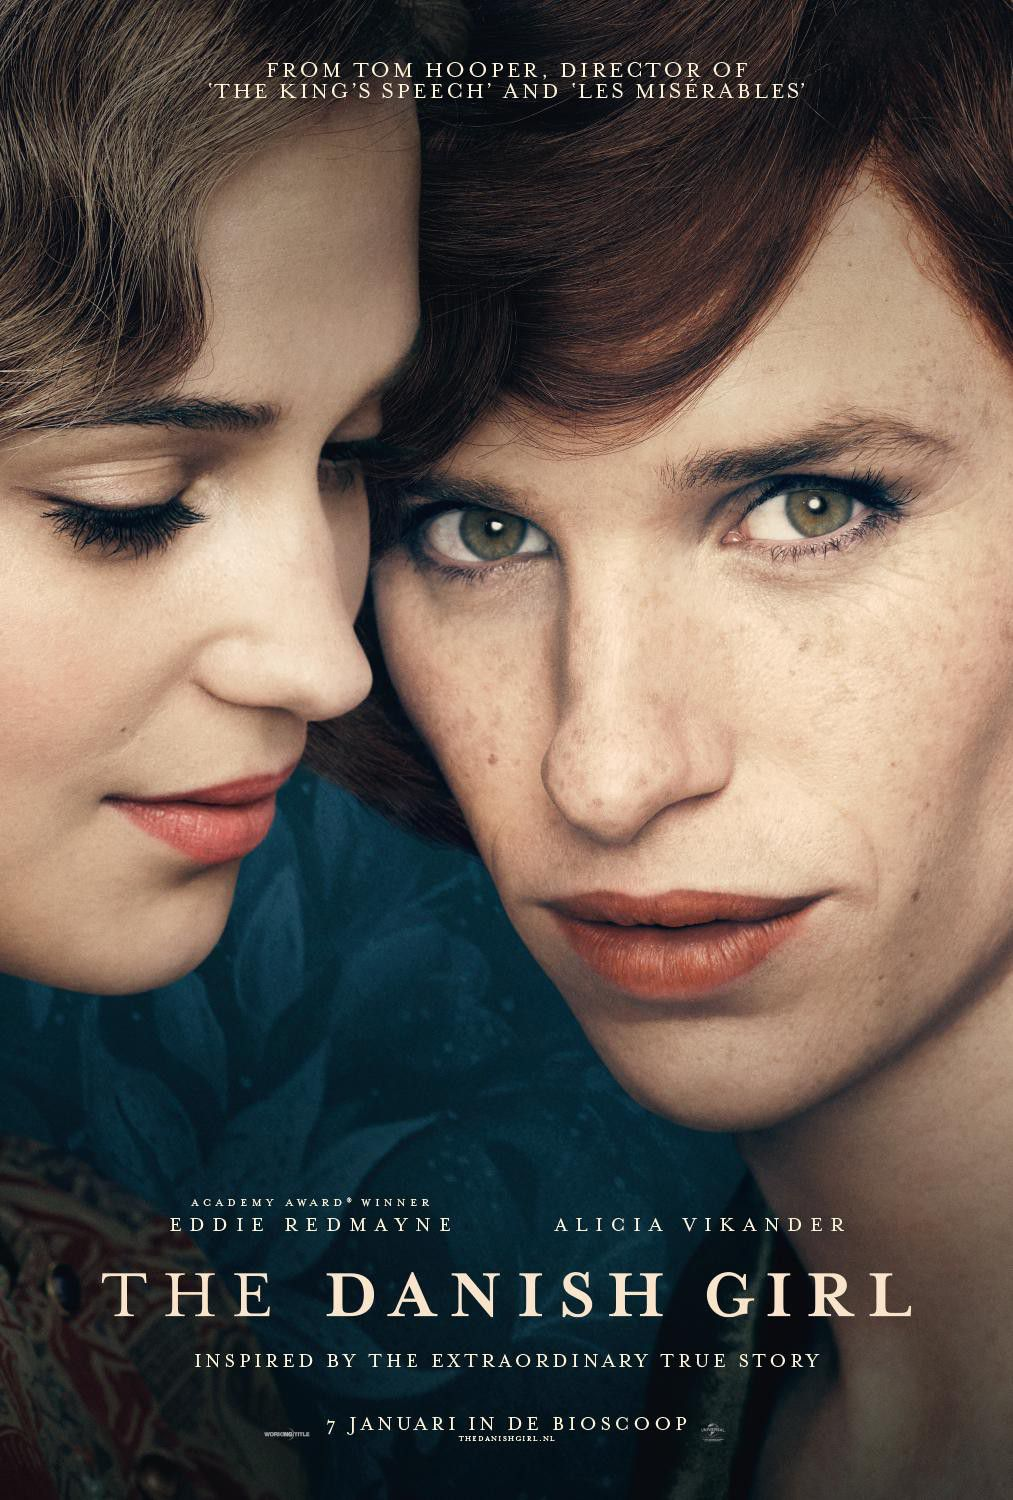 The Danish Girl - Tom Hooper - Eddie Redmayne - Alicia Vikander - Amber Heard - Matthias Schoenaerts - film poster